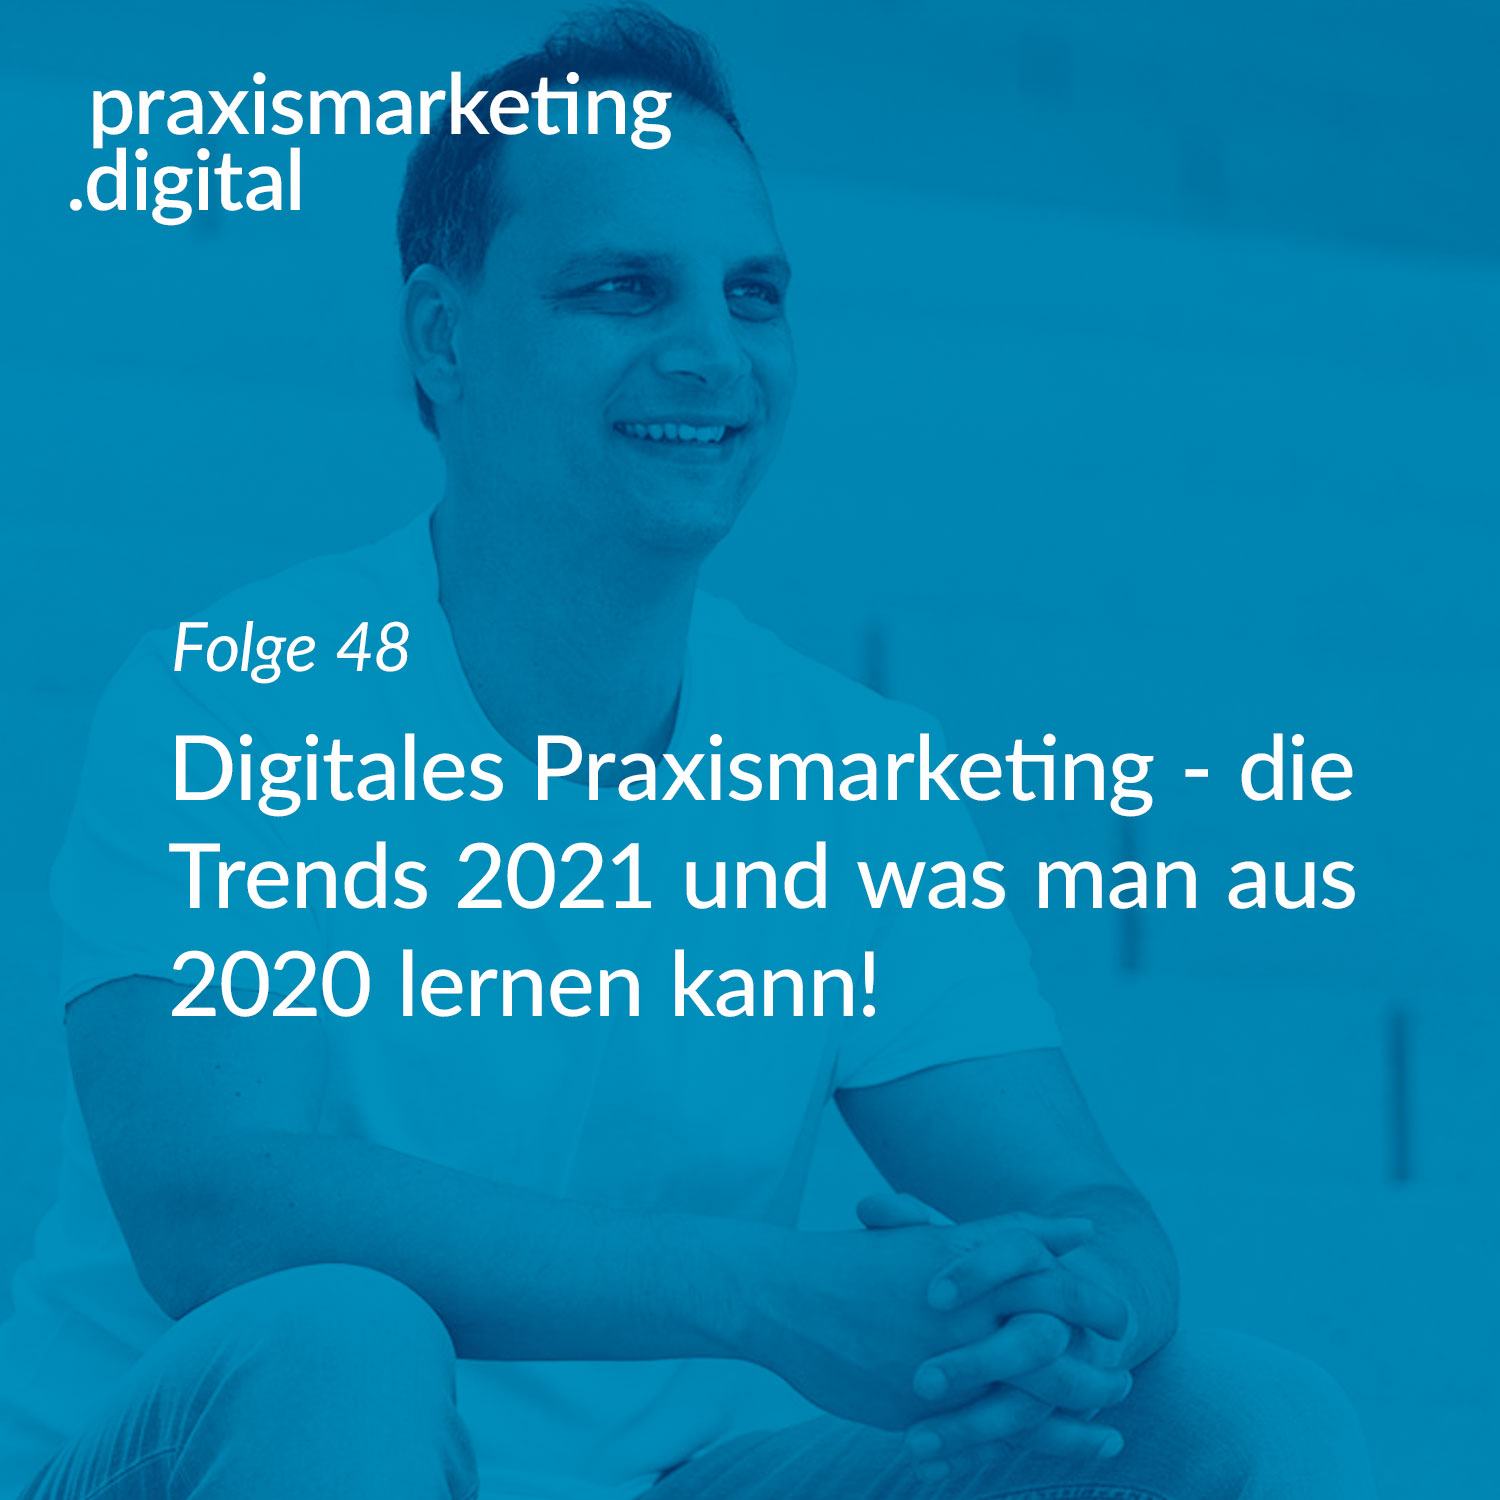 Digitales Praxismarketing - Trends 2021